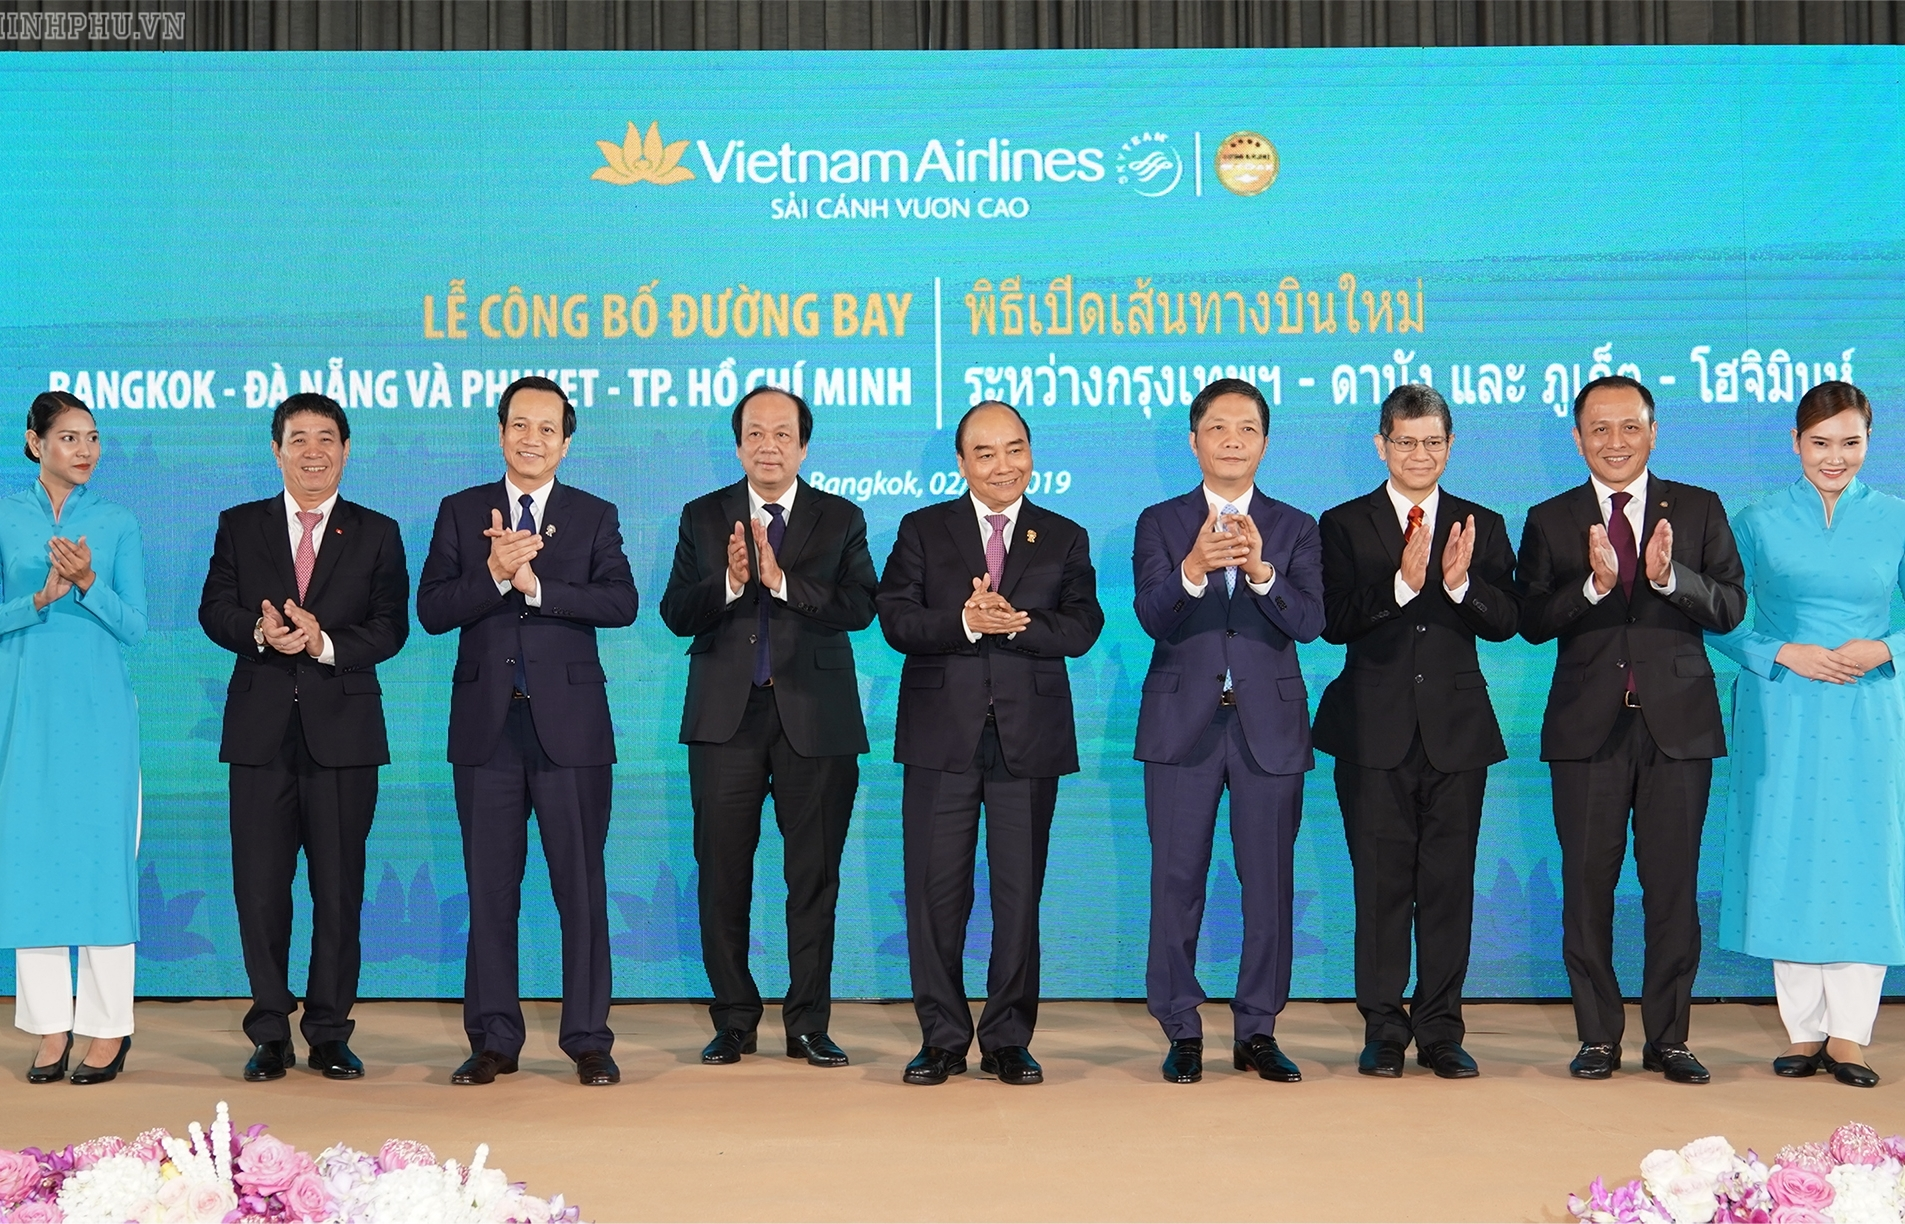 PM attends launching ceremonies for new air routes in Bangkok